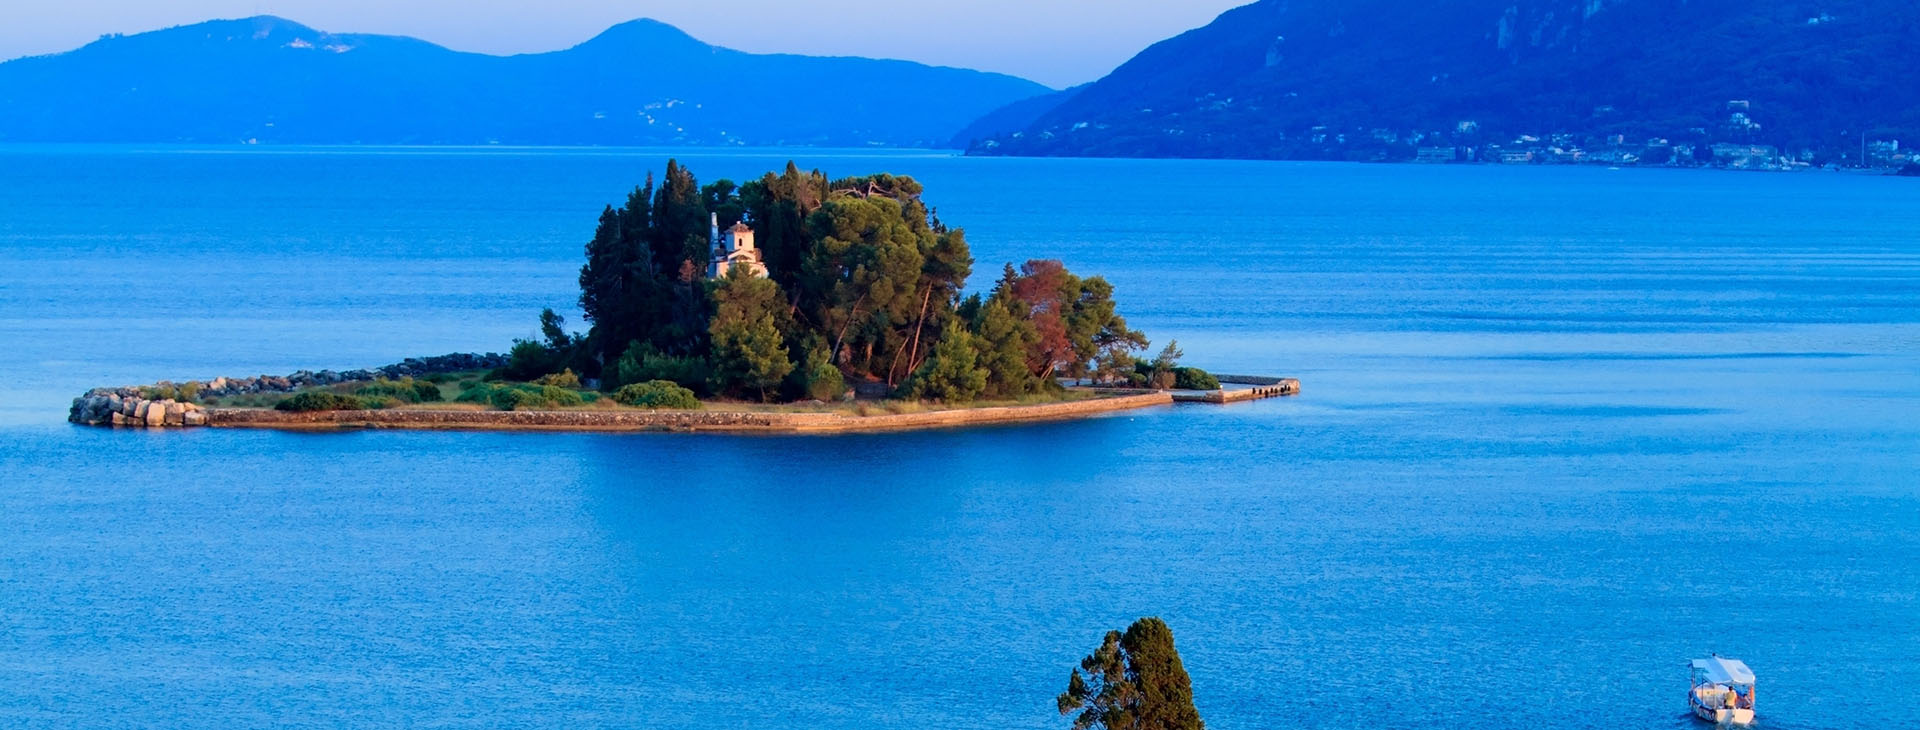 Islet of Pontikonisi at Corfu island